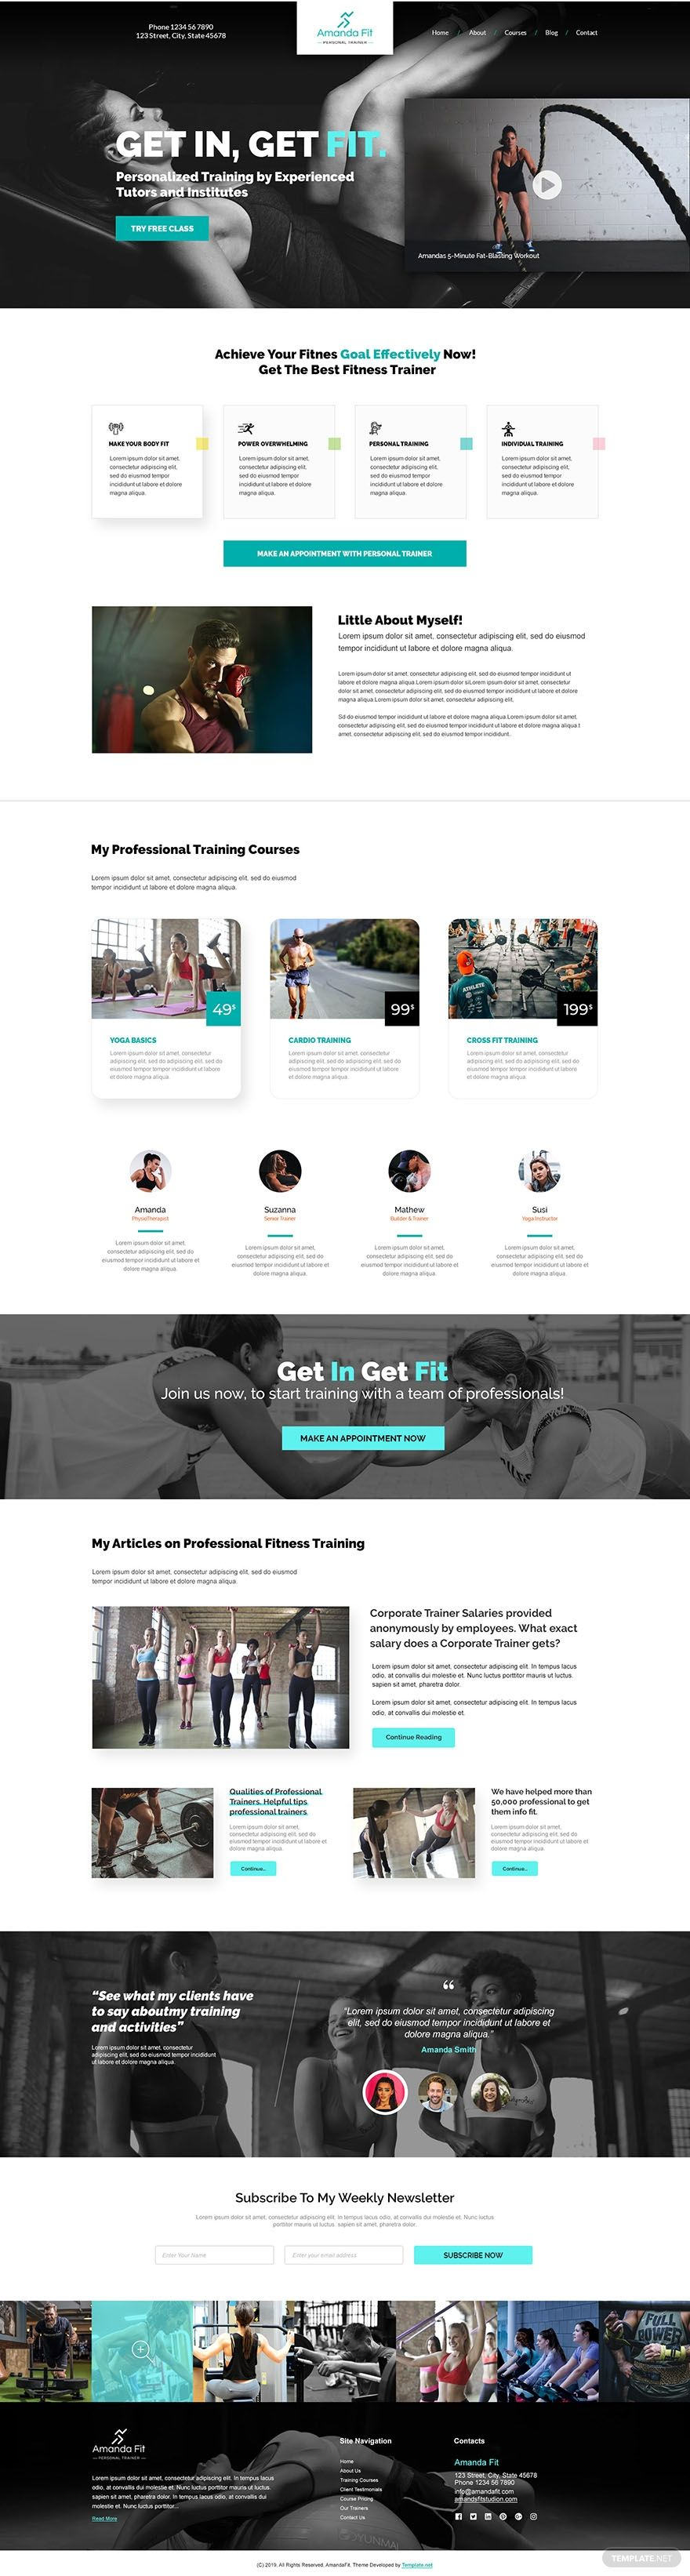 Personal Trainer PSD Landing Page Template in 2020